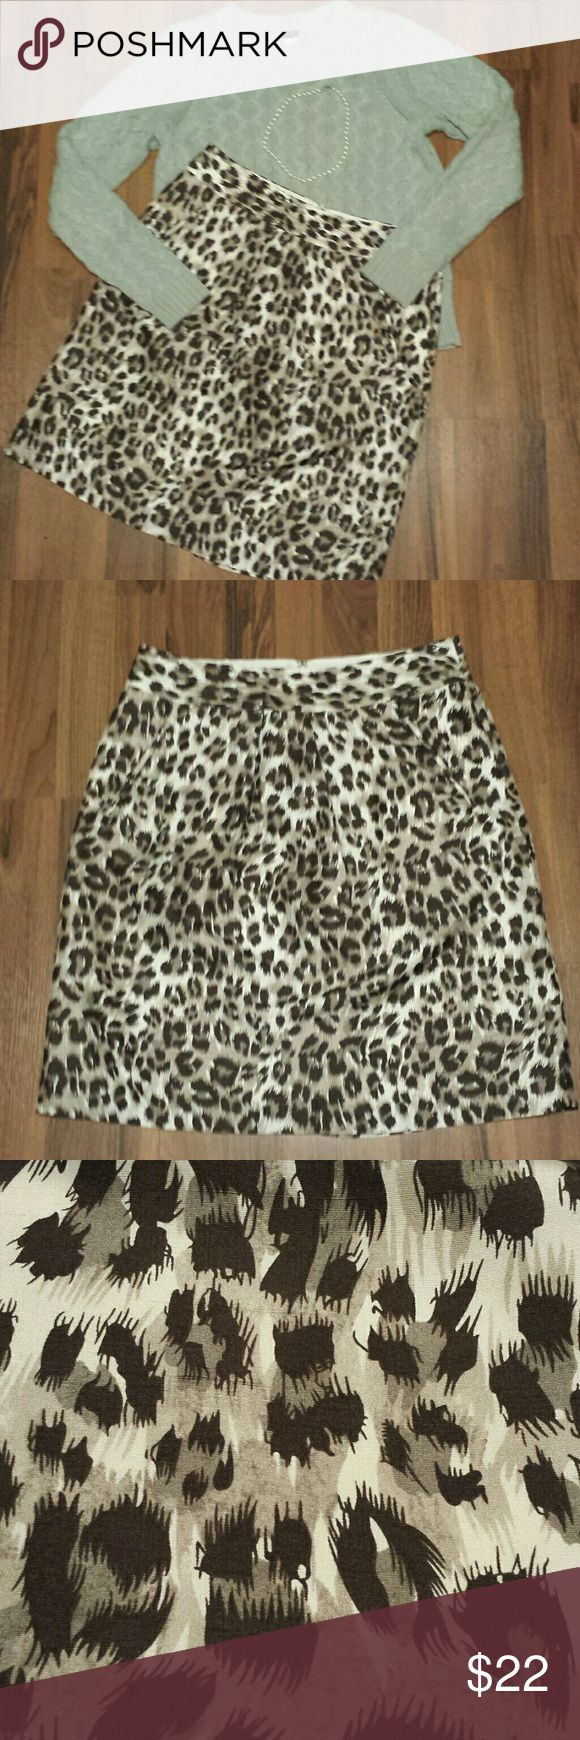 {Banana Republic} Silk Skirt This leopard print, 100% silk skirt from Banana Republic is ultra luxe!! Beautiful condition, worn once, no blemishes or signs of wear. Dress this up with pearls & a cashmere sweater or with a crop denim jacket & flats. Very versatile, this skirt takes you from the office to date night depending on your styling. Fully Lined has back zipper & hook/eye closure. Simple pleat in front & pockets. Measurements: Length 23, Waist 16 & Hips 23. Offers Welcome! Banana…